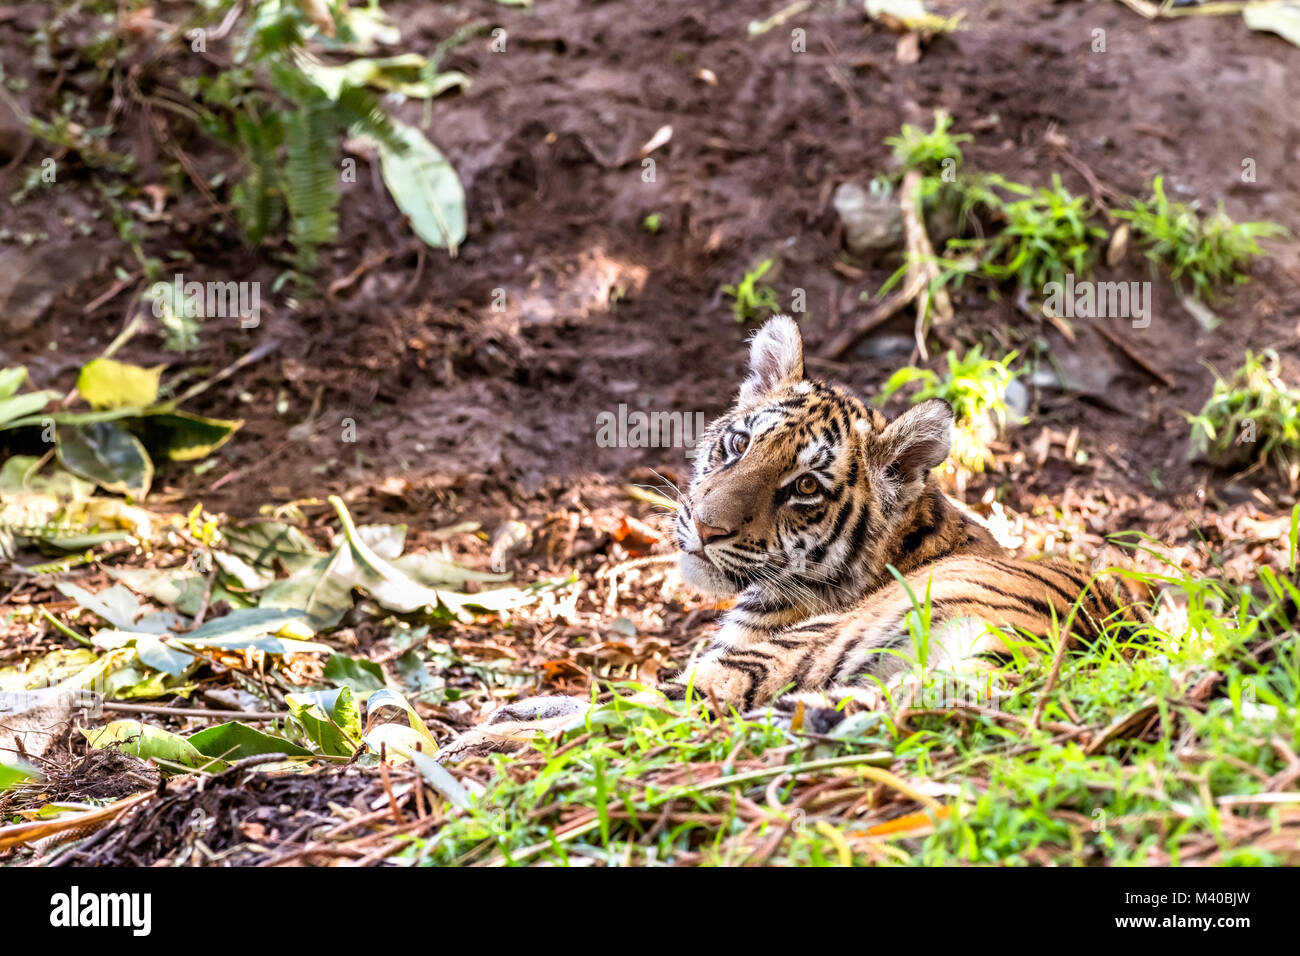 A rare and powerful Sumatran tiger rests in a shaded area during a safari - Stock Image